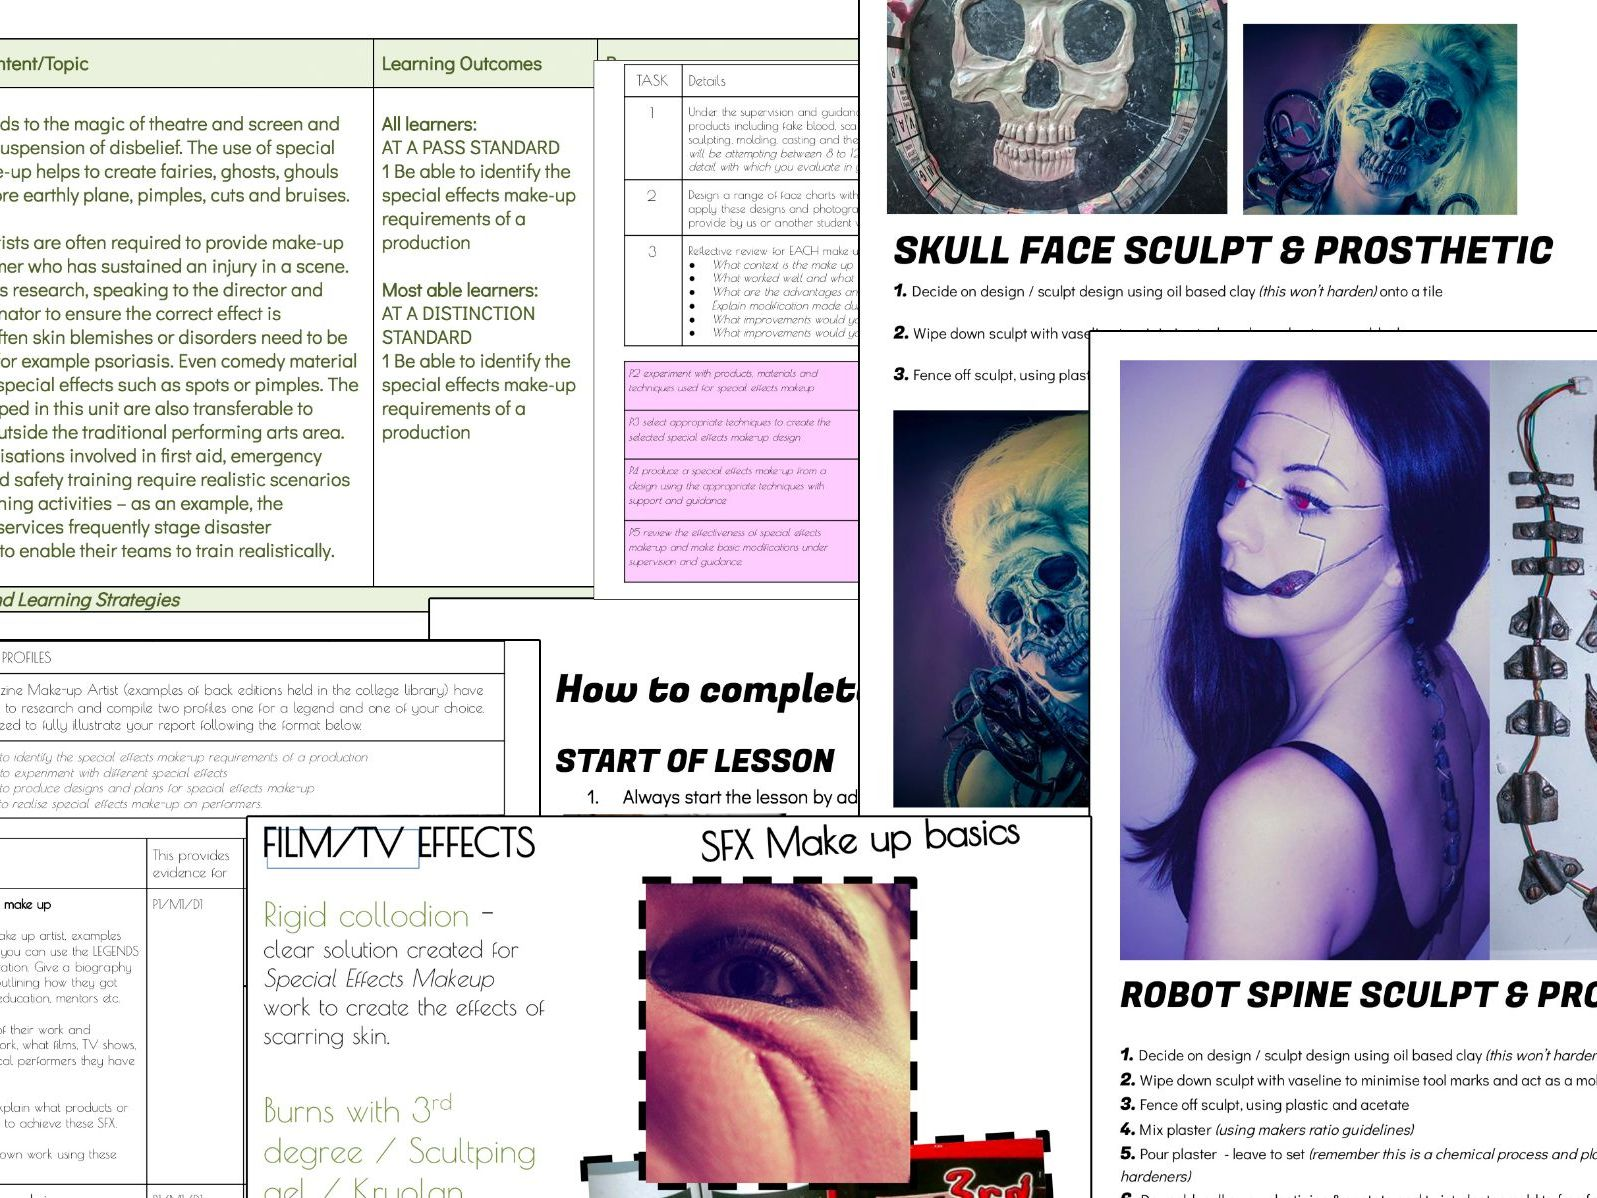 Btec L3 Production Arts Special effects Make-up SFX - FULL PACK - SOW, assignments & resources